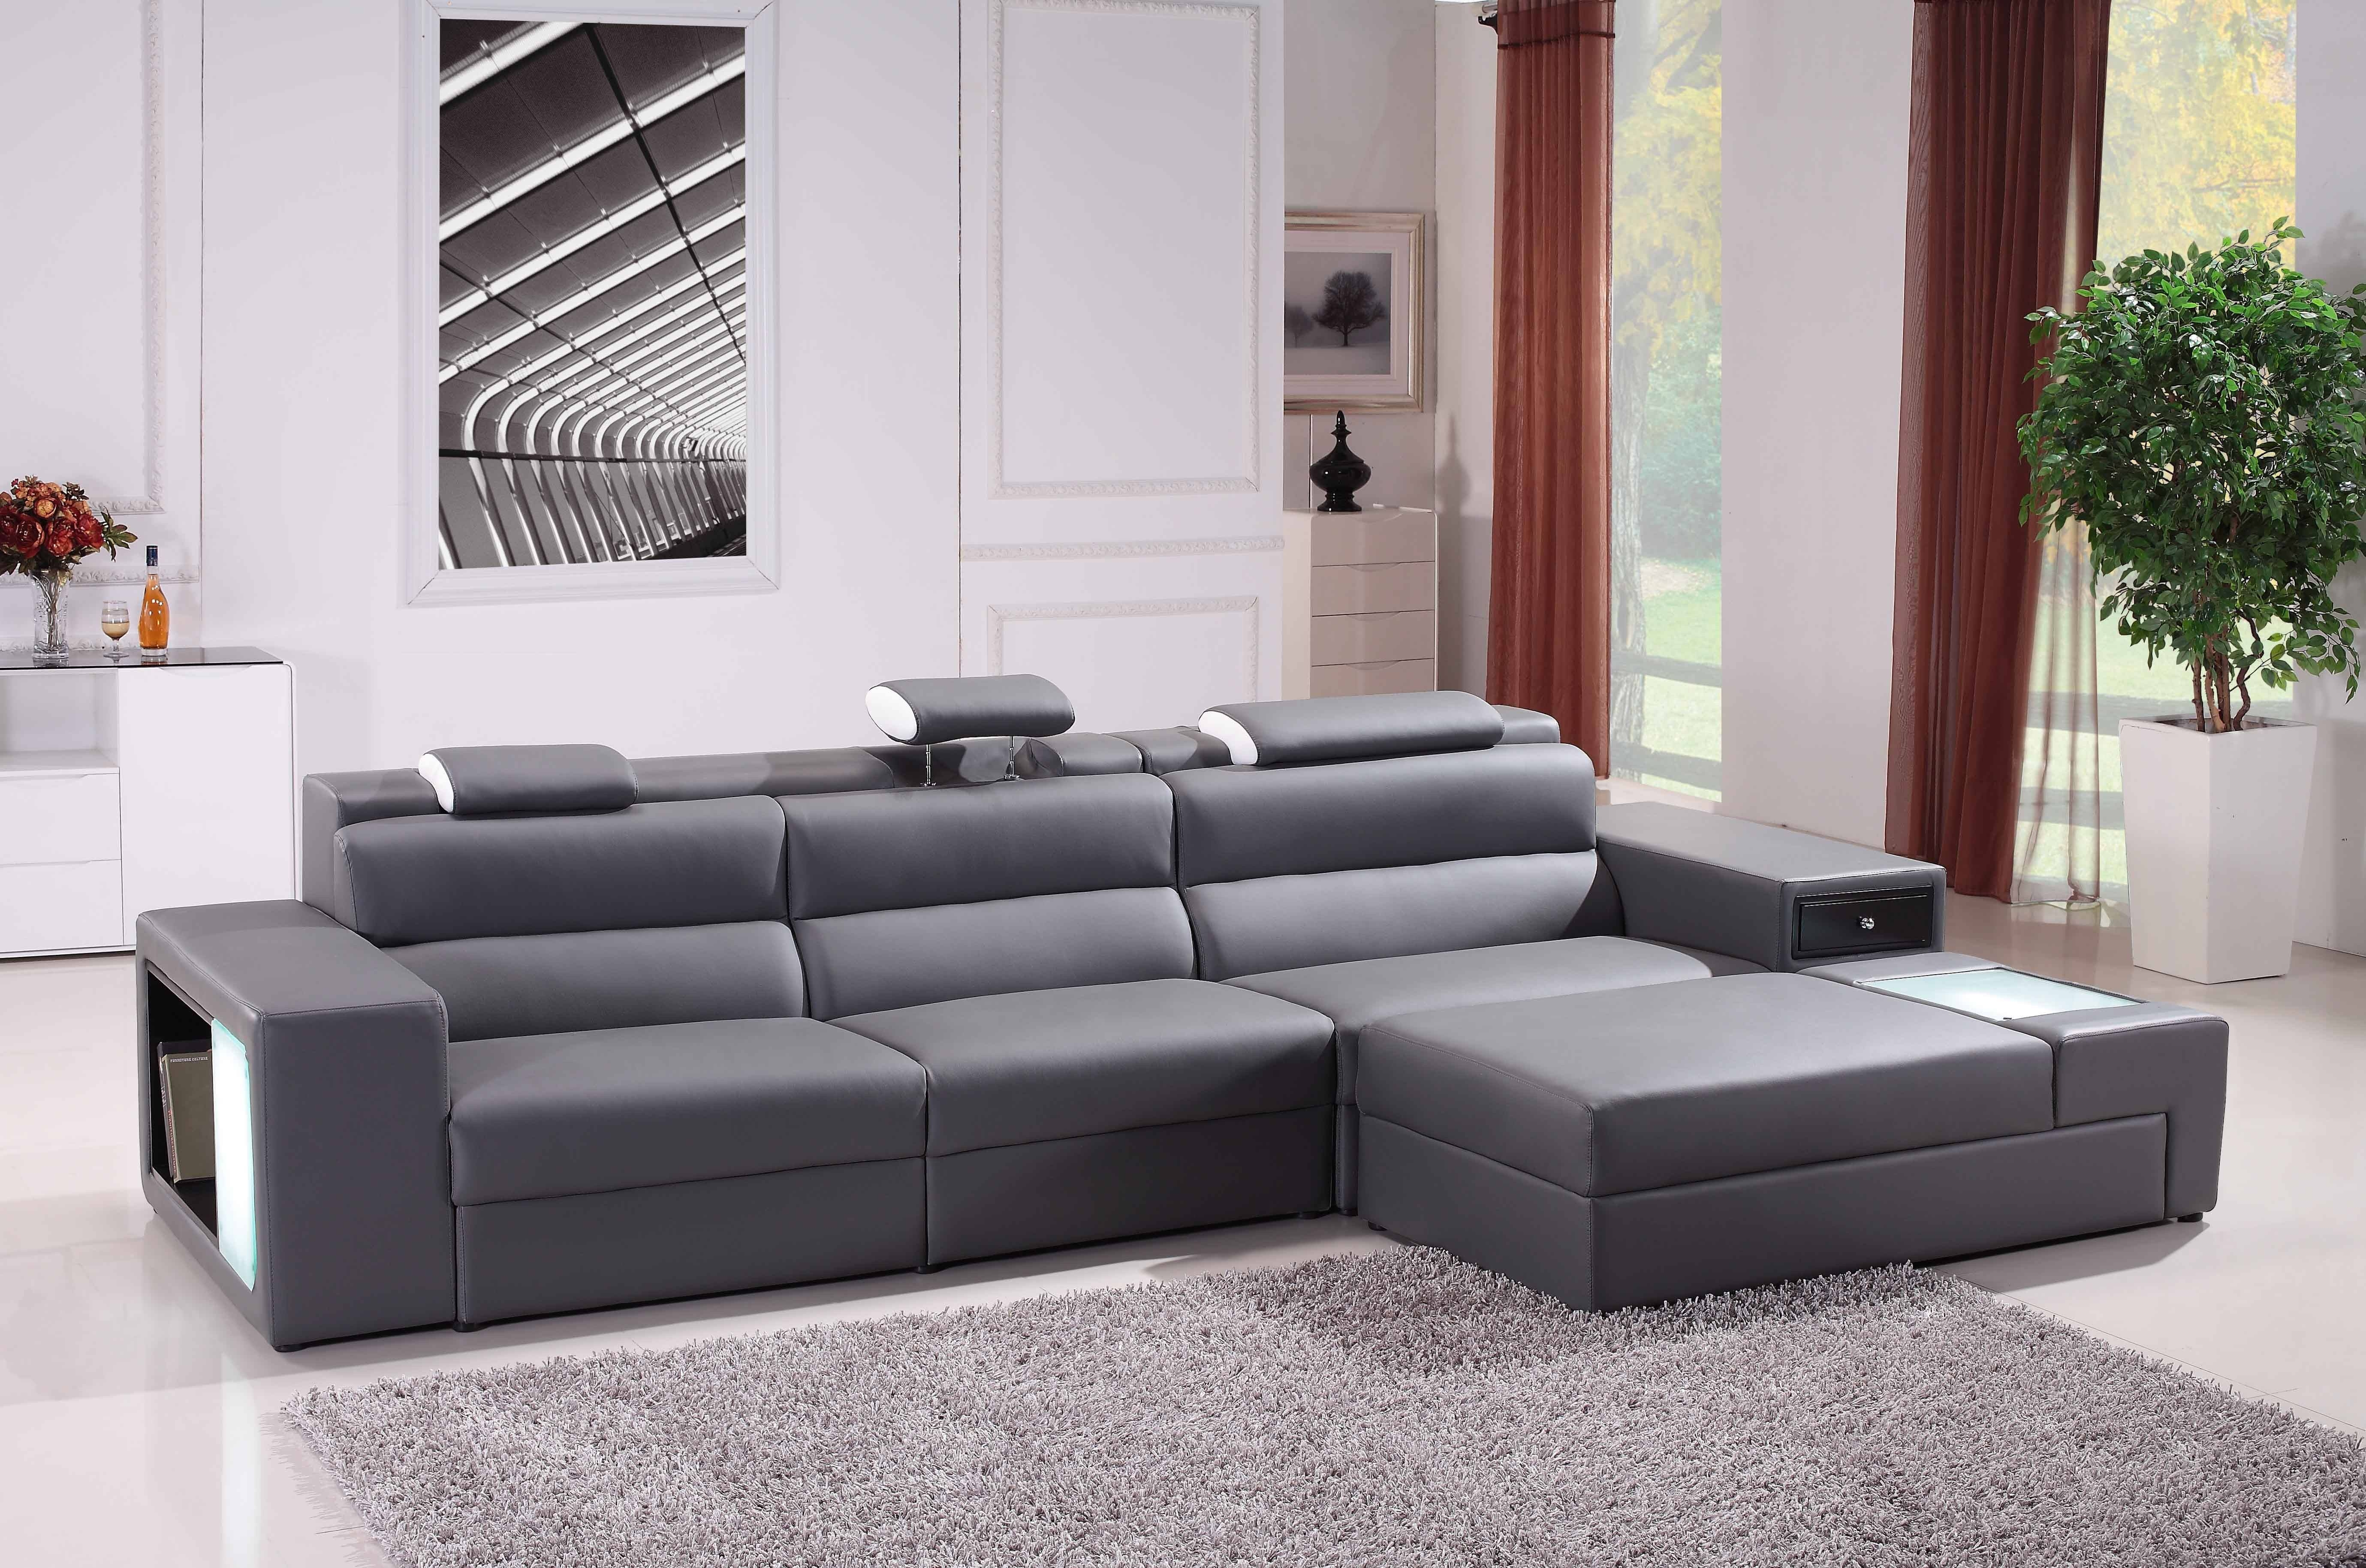 Amusing Navy Blue Leather Sectional Sofa 31 In Luxurious Sectional inside Blue Leather Sectional Sofas (Image 1 of 15)